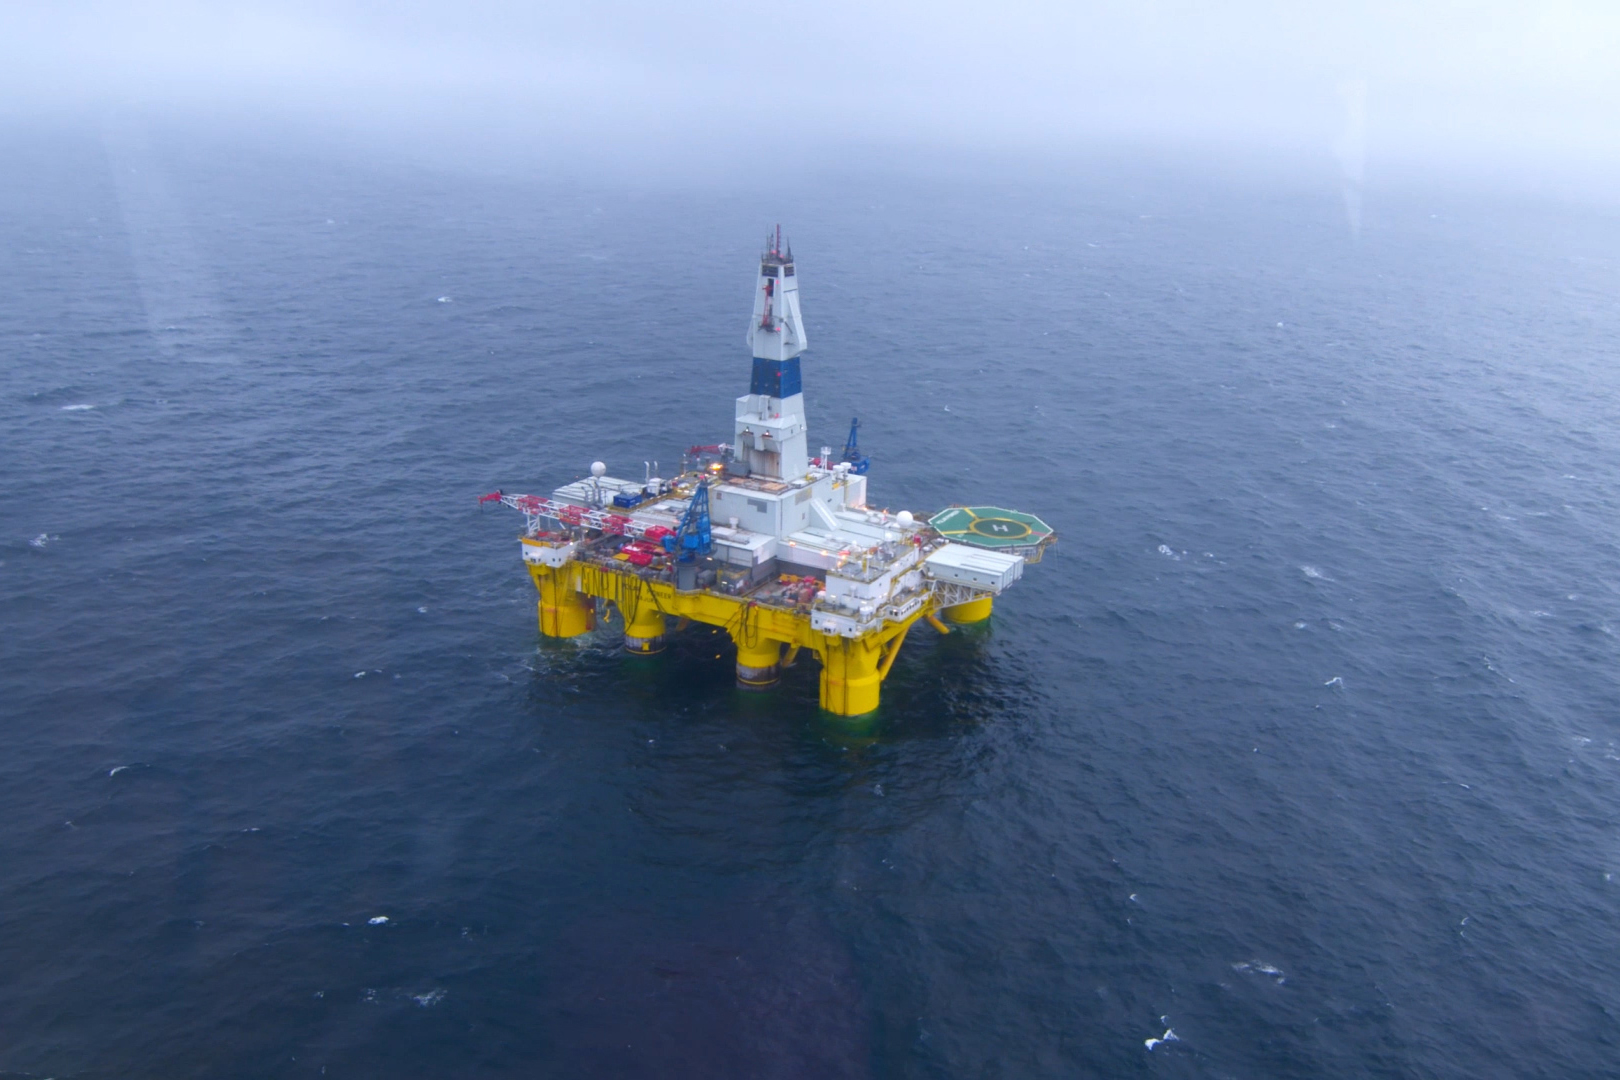 Shell Oil's drilling rig Polar Pioneer operates in the Chukchi Sea in 2015. (Shell Oil)